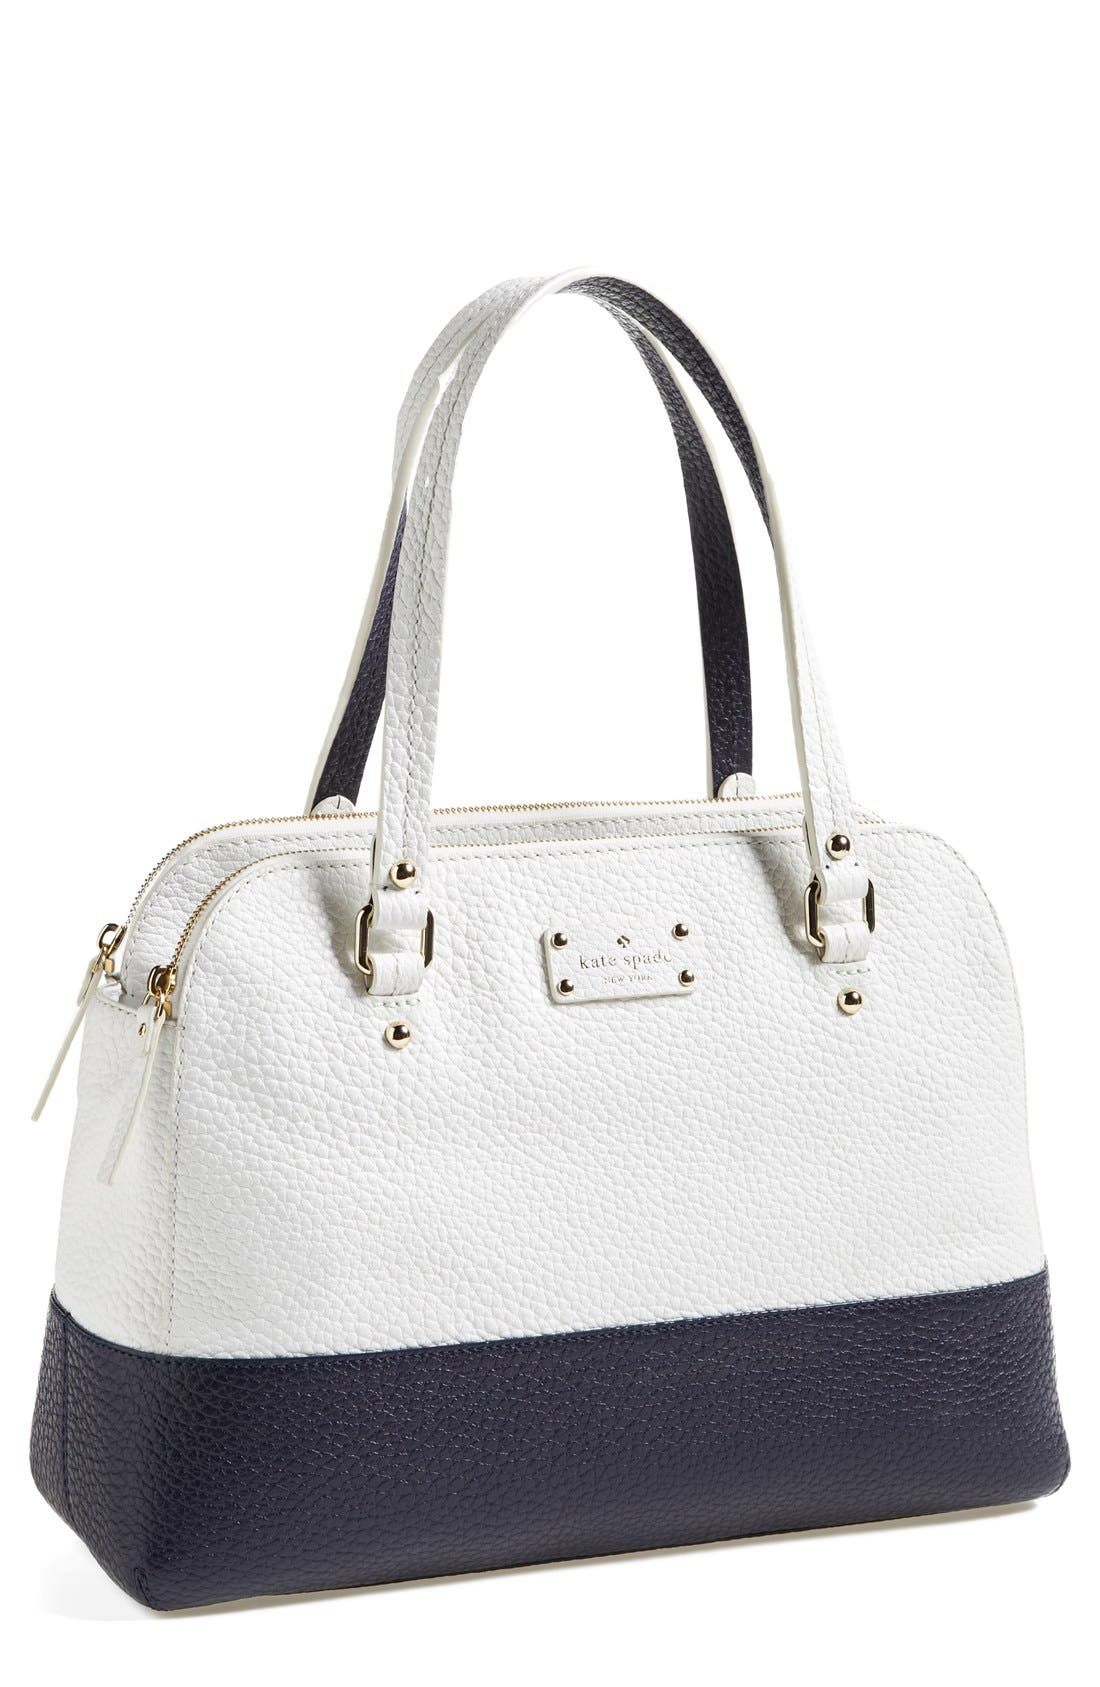 'grove court - lainey' leather tote,                             Main thumbnail 1, color,                             Fresh White/ Midnight